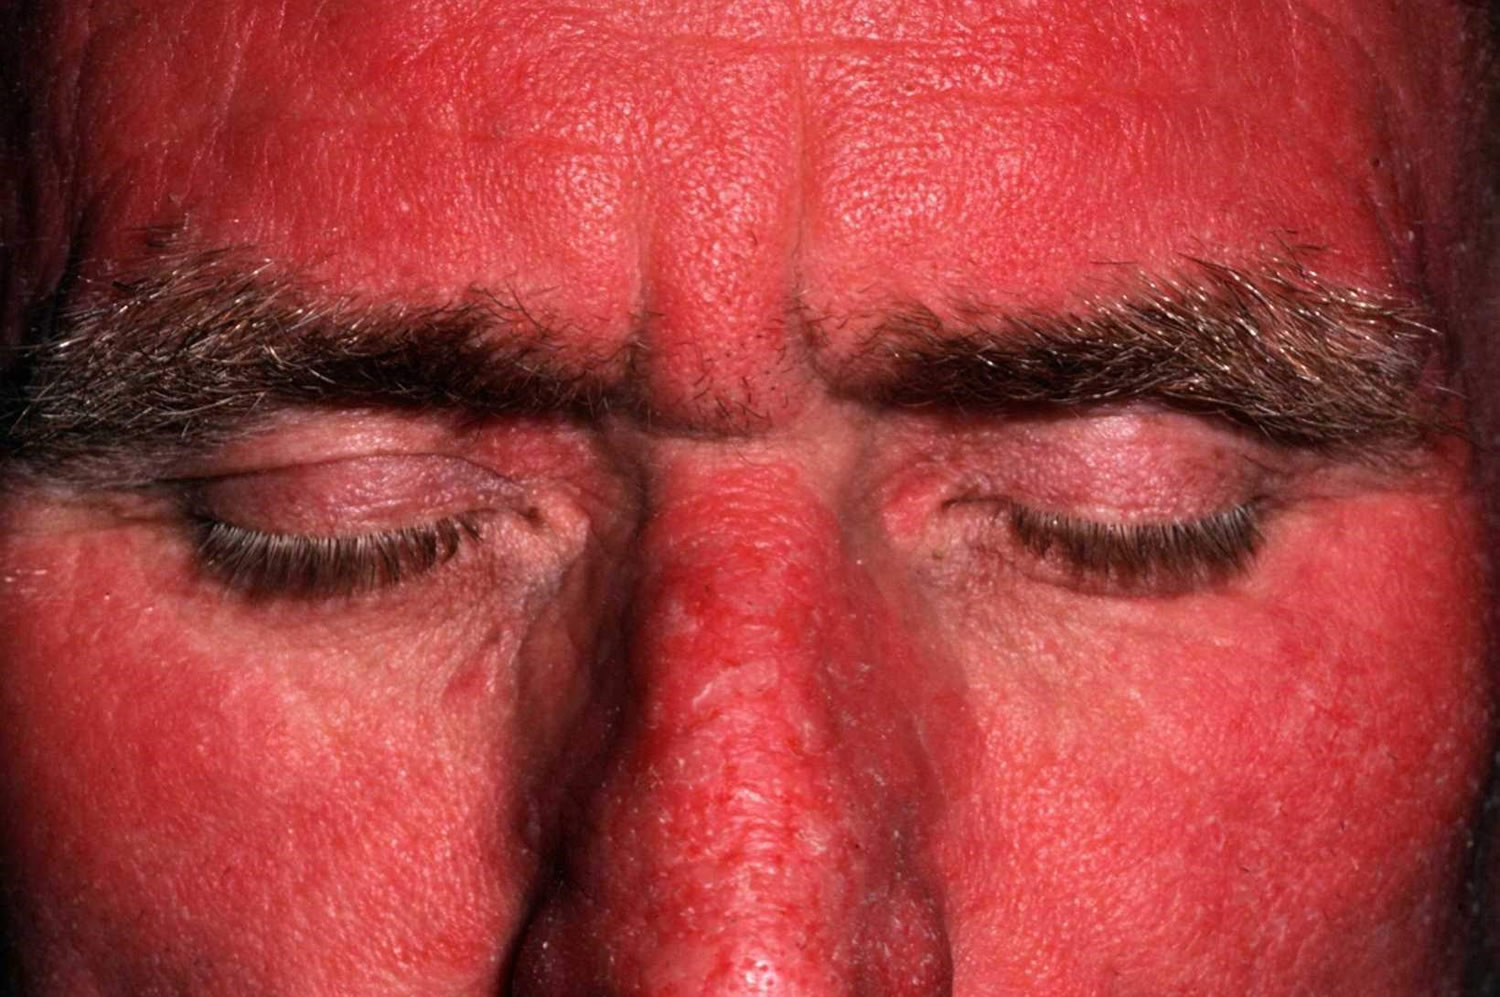 Polymorphic Light Eruption Causes Rash Treatment